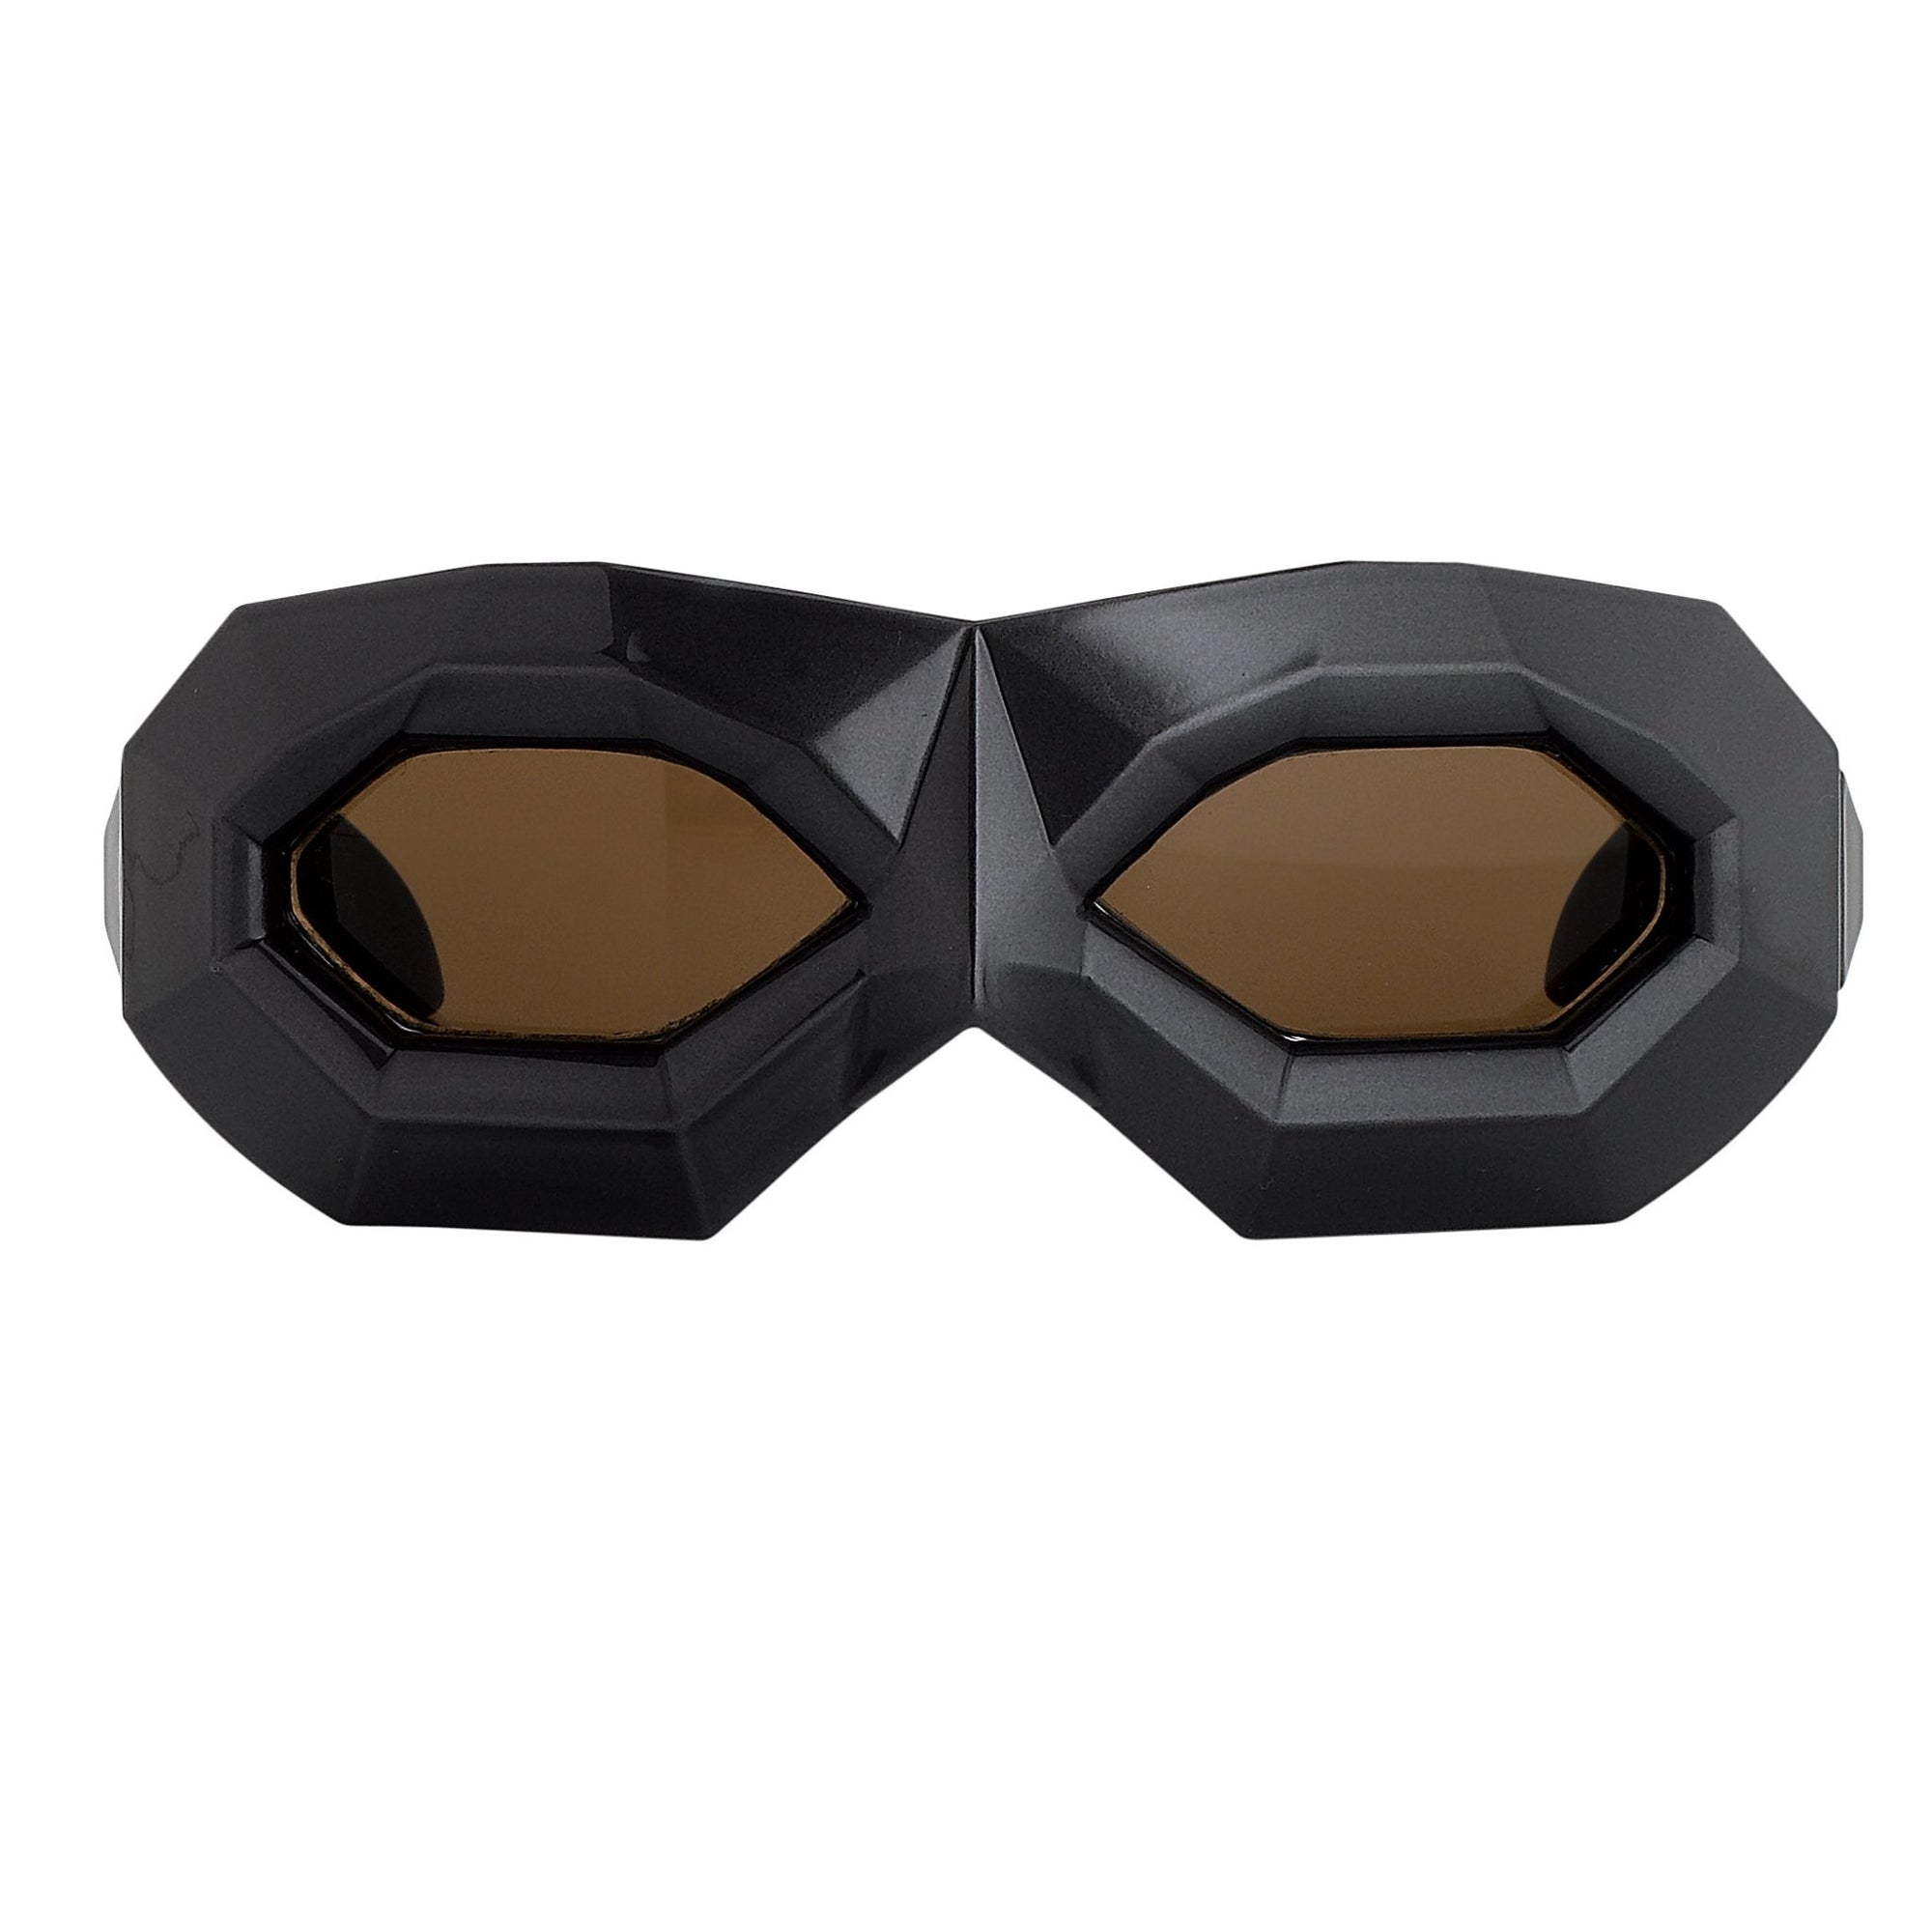 Walter Van Beirendonck Sunglasses Special Frame Dark Grey and Dark Brown Lenses - WVB2C9SUN - Watches & Crystals